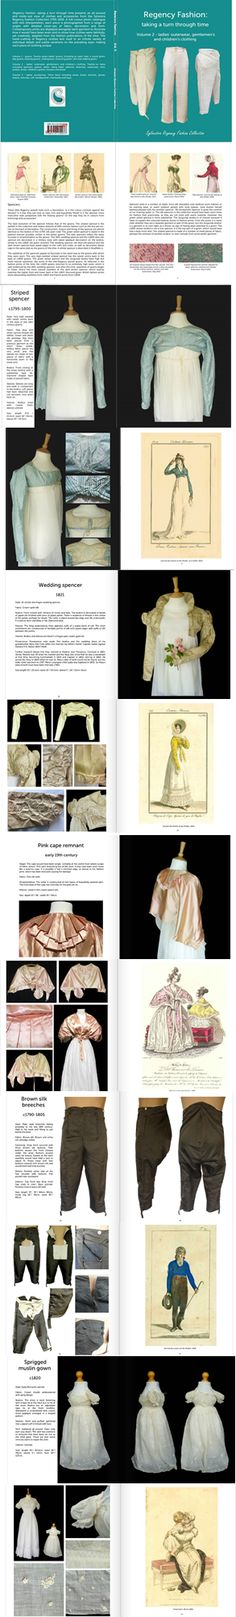 Book: 'Regency Fashion: taking a turn through time, Volume 2' is perfect for anyone with a Regency fashion obsession! Every piece in the Sylvestra Regency Fashion Collection 1795-1830 is photographed from a number of angles, along with detailed close-ups, and a fashion print. 26 pieces all-around and in detail. Spencers, pelisse, riding habits, mens, childrens. Available worldwide http://www.blurb.co.uk/search/site_search?search=sylvestra+regency